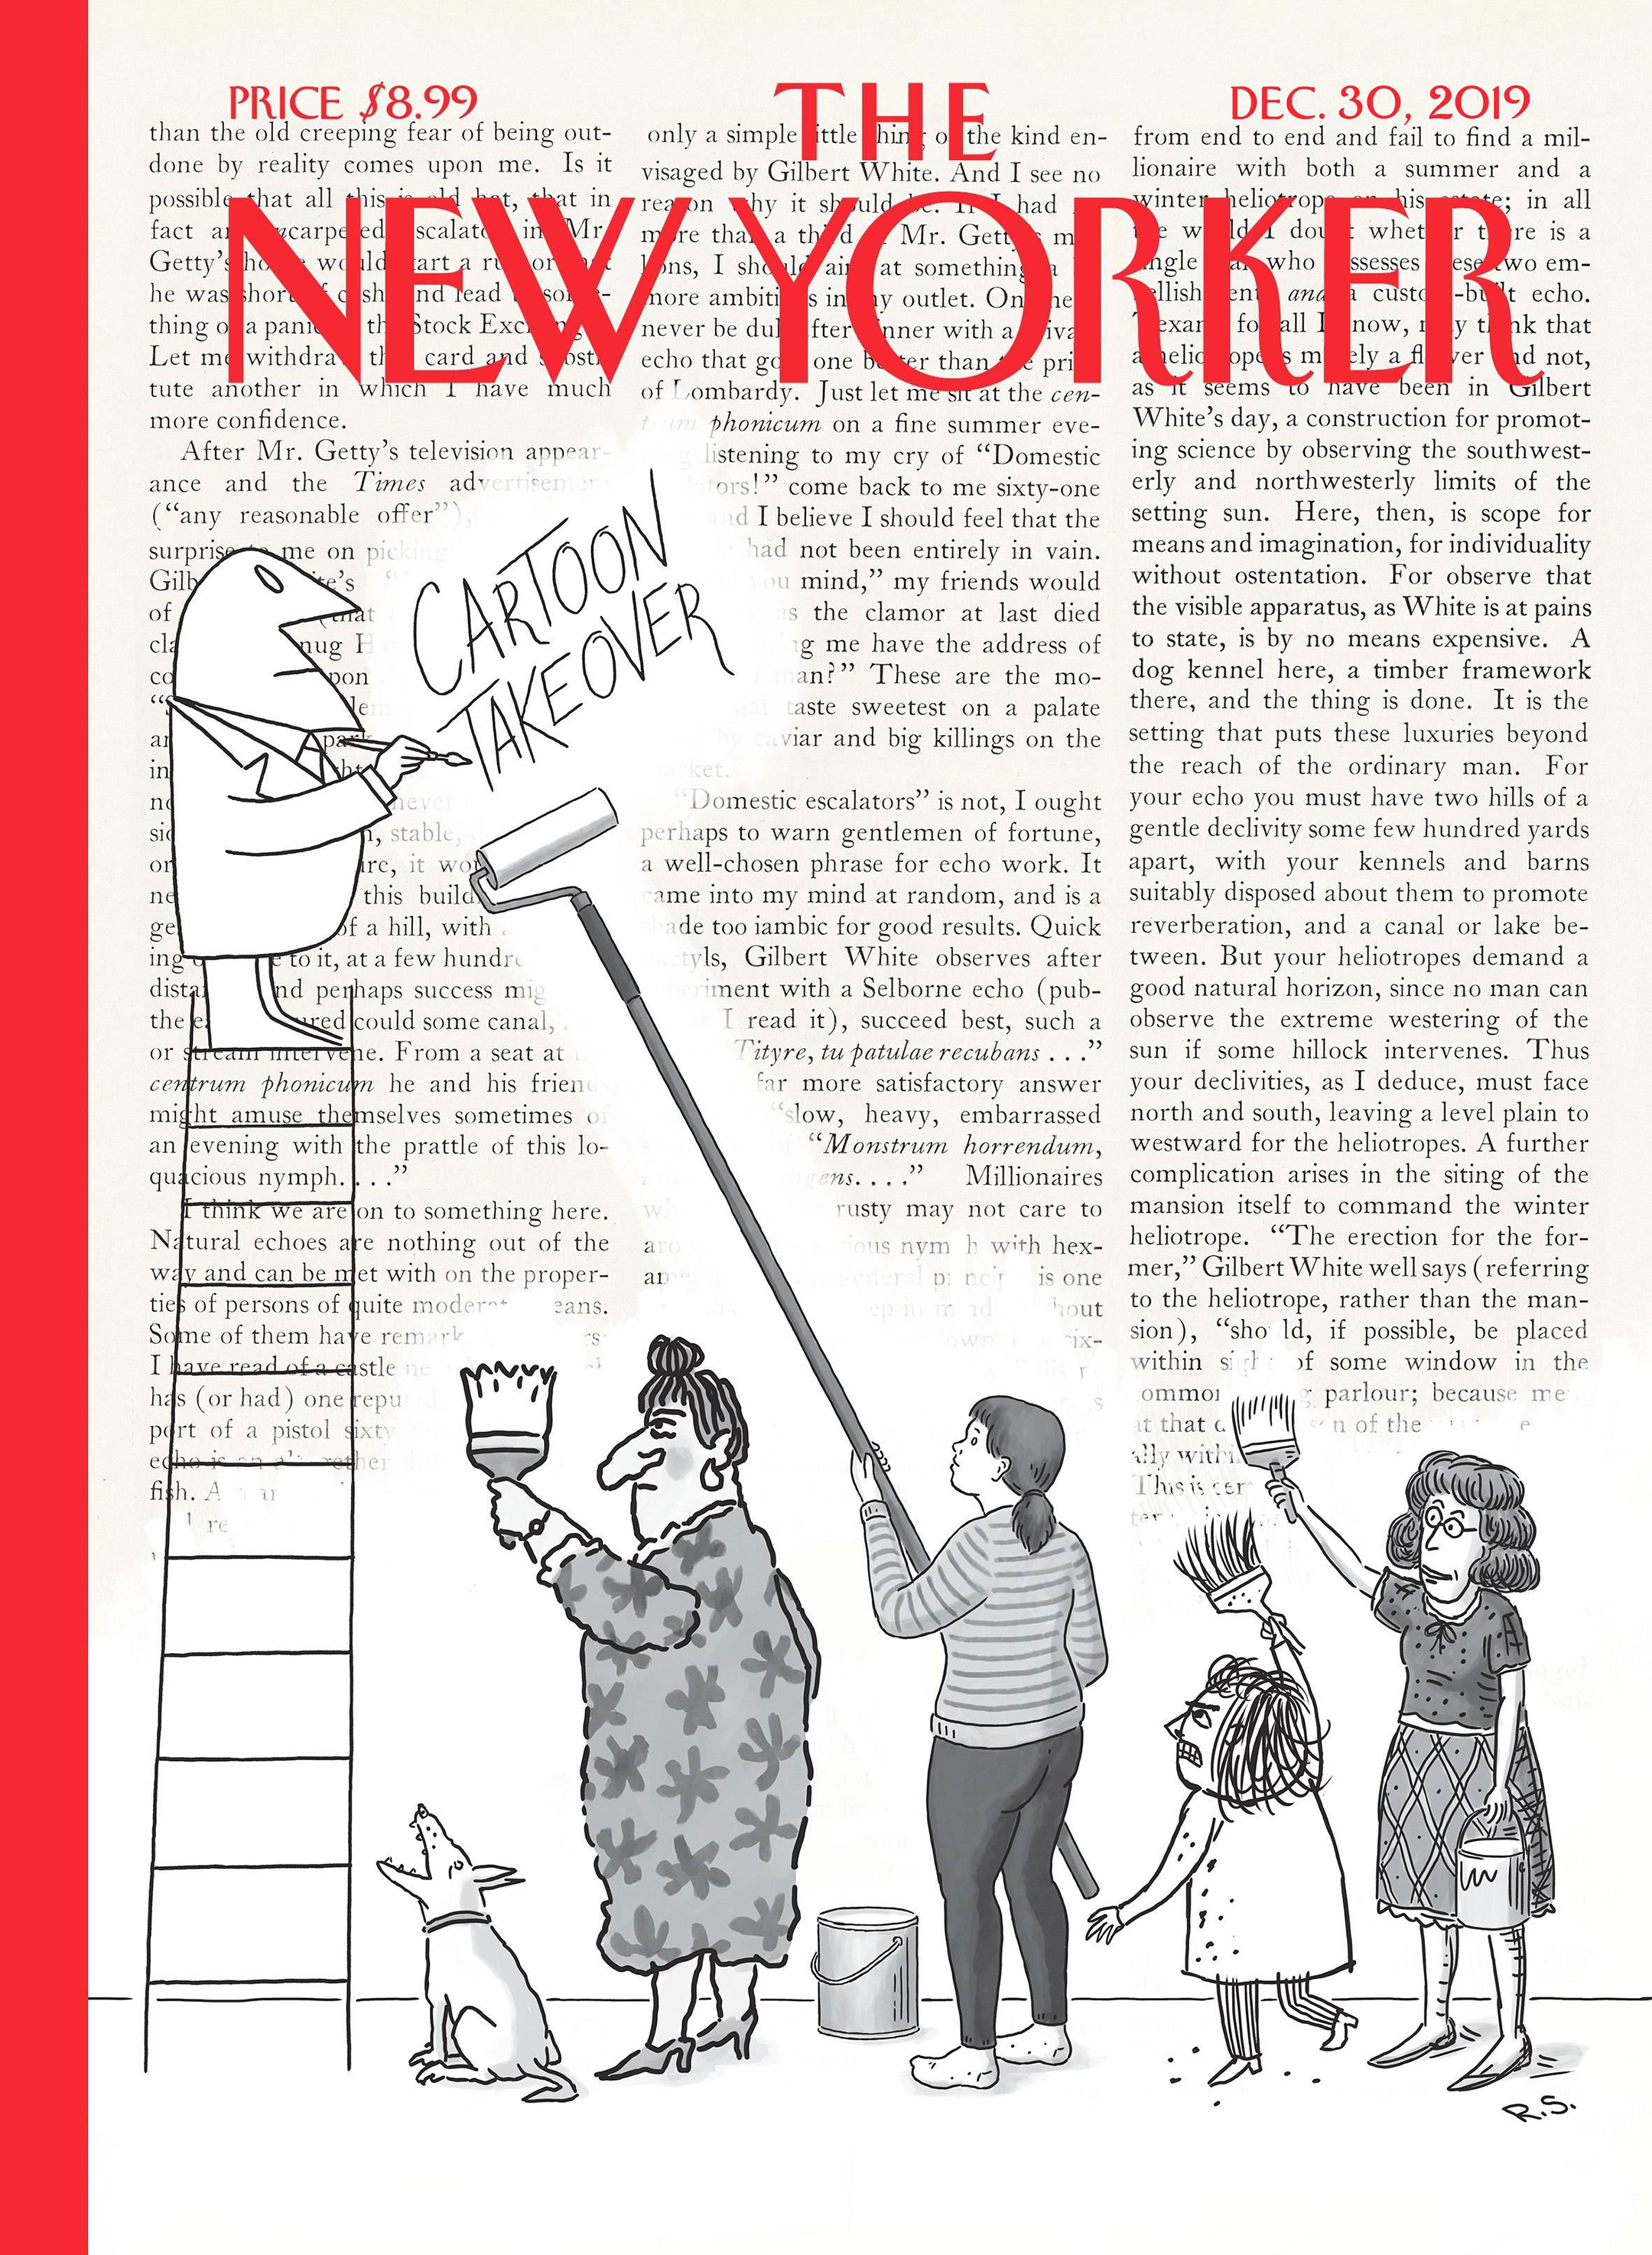 cover of the new yorker showing four cartoon characters whitewashing printed text while a fifth, standing on a ladder, scrawls the words cartoon takeover near the top of the page